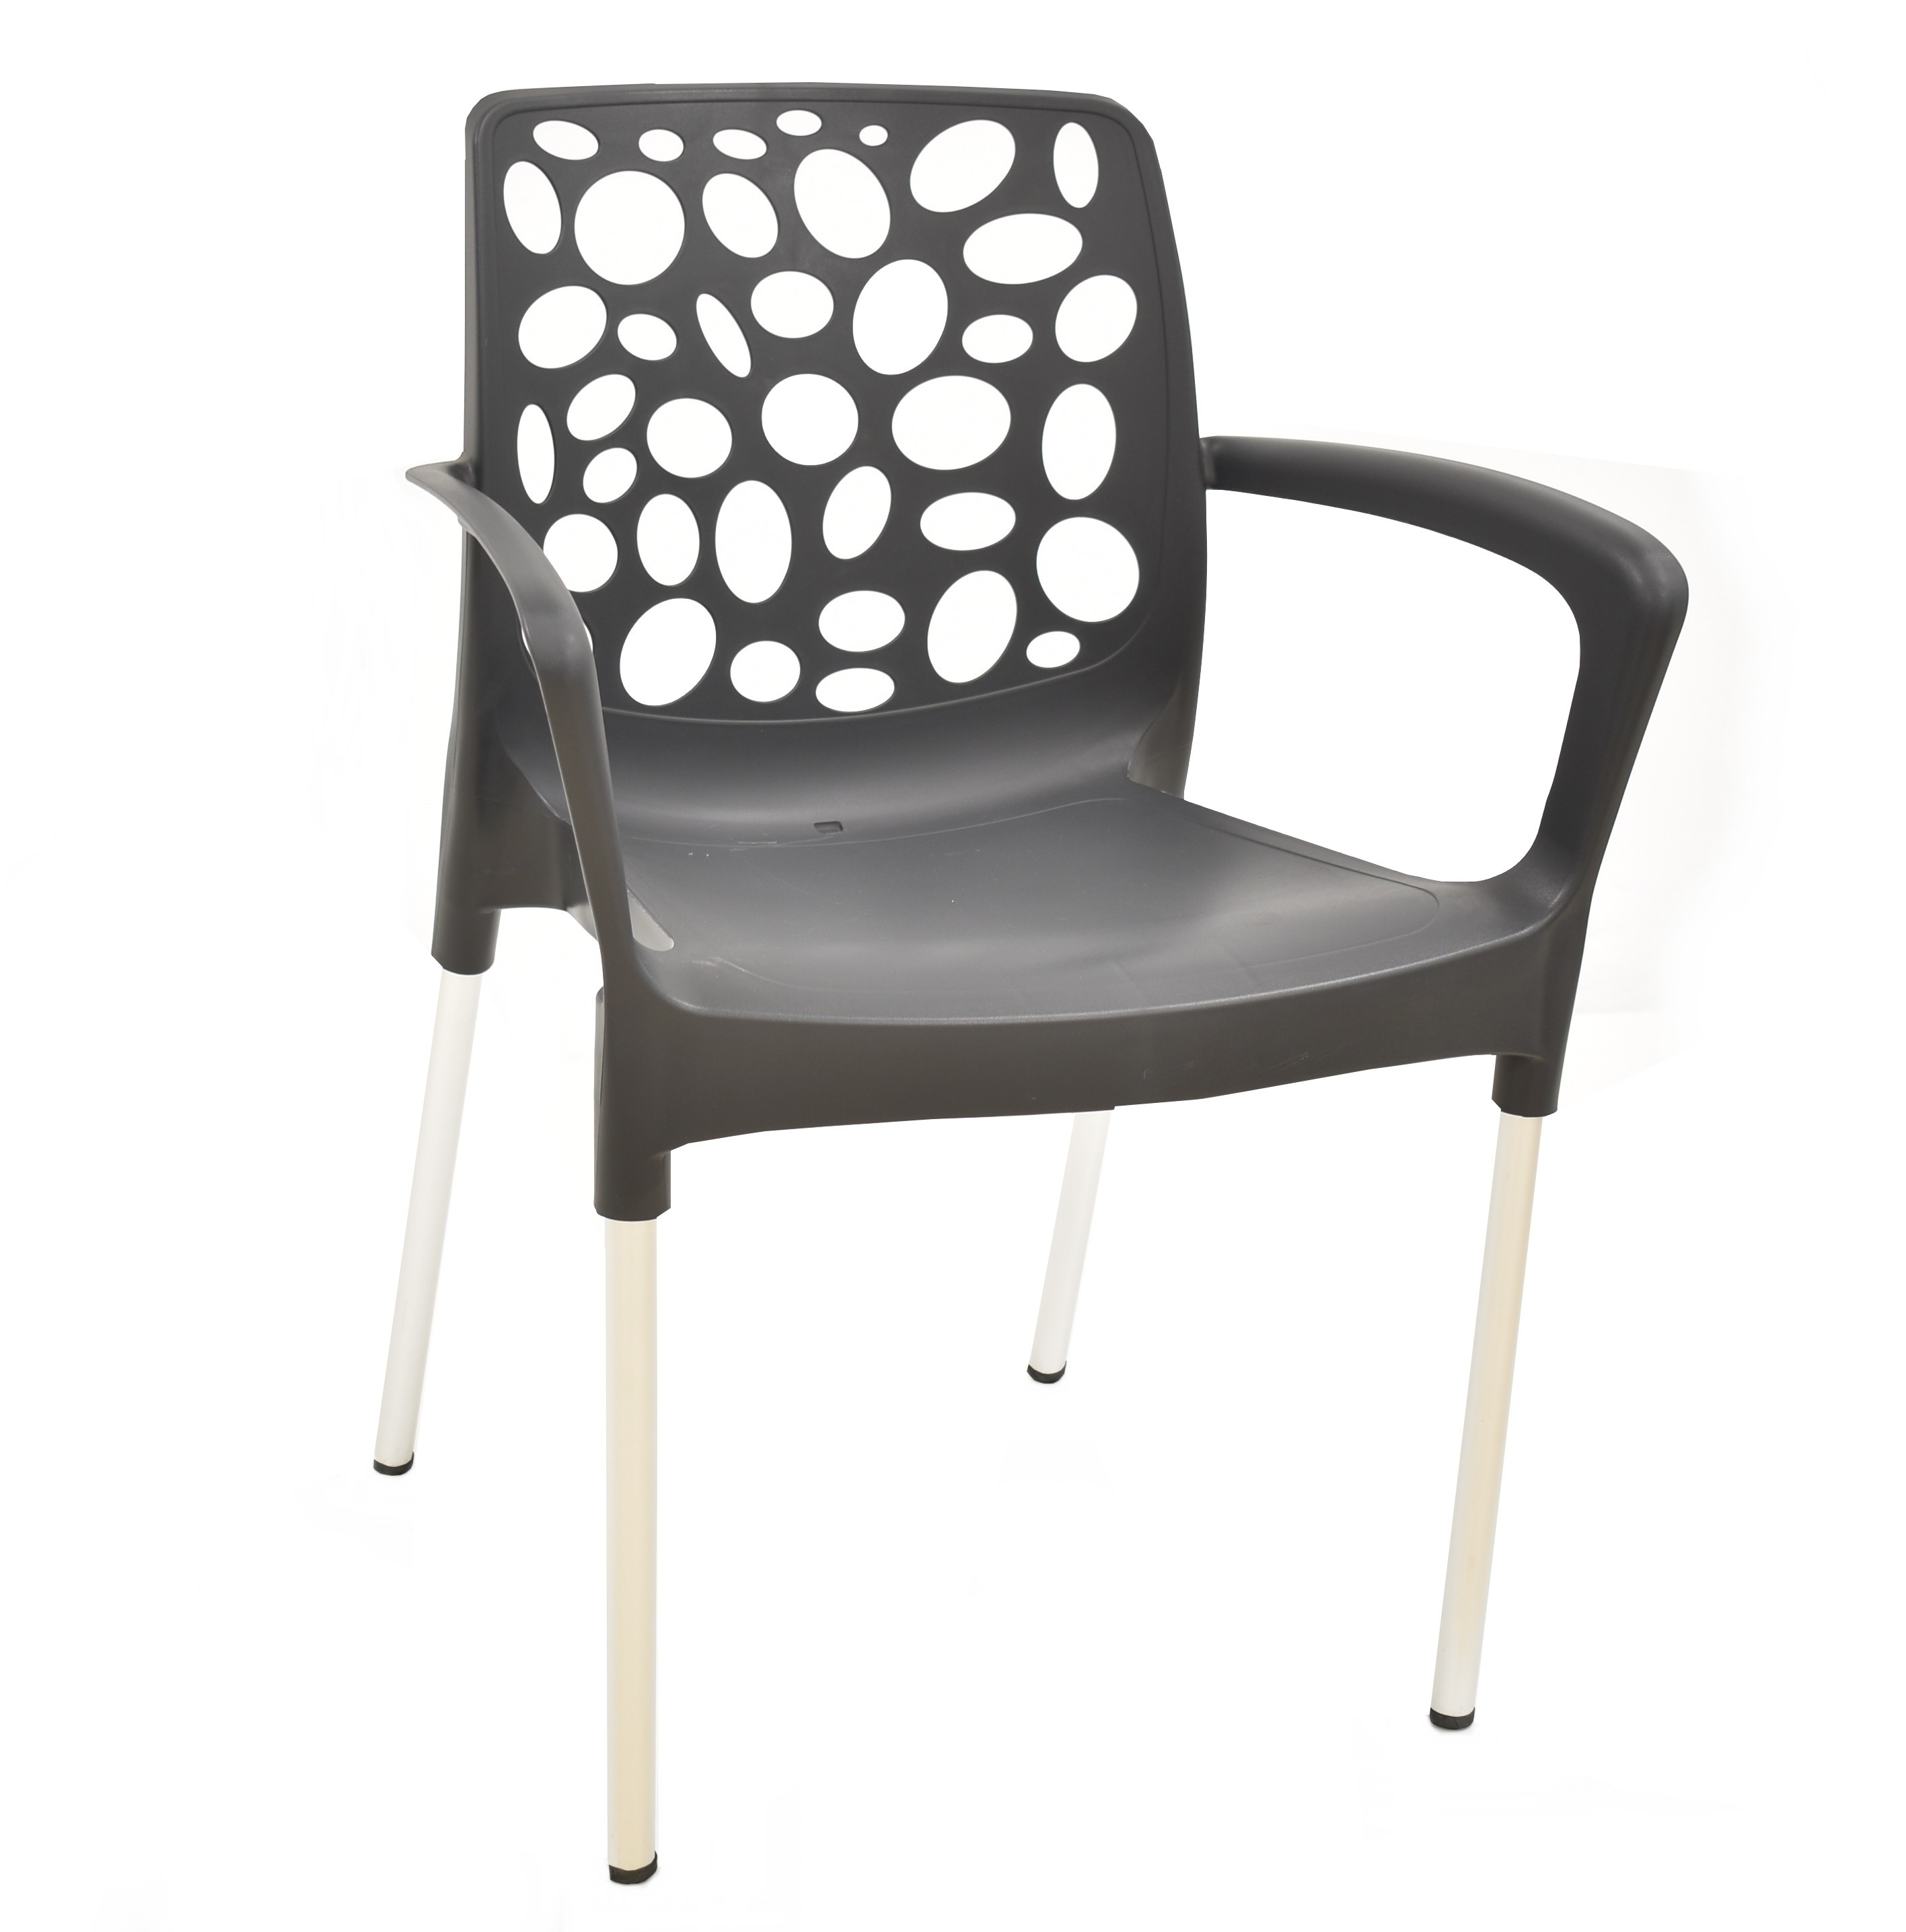 Armchair ALLEGRA, Aluminum, Stackable, Polypropylene Anthracite